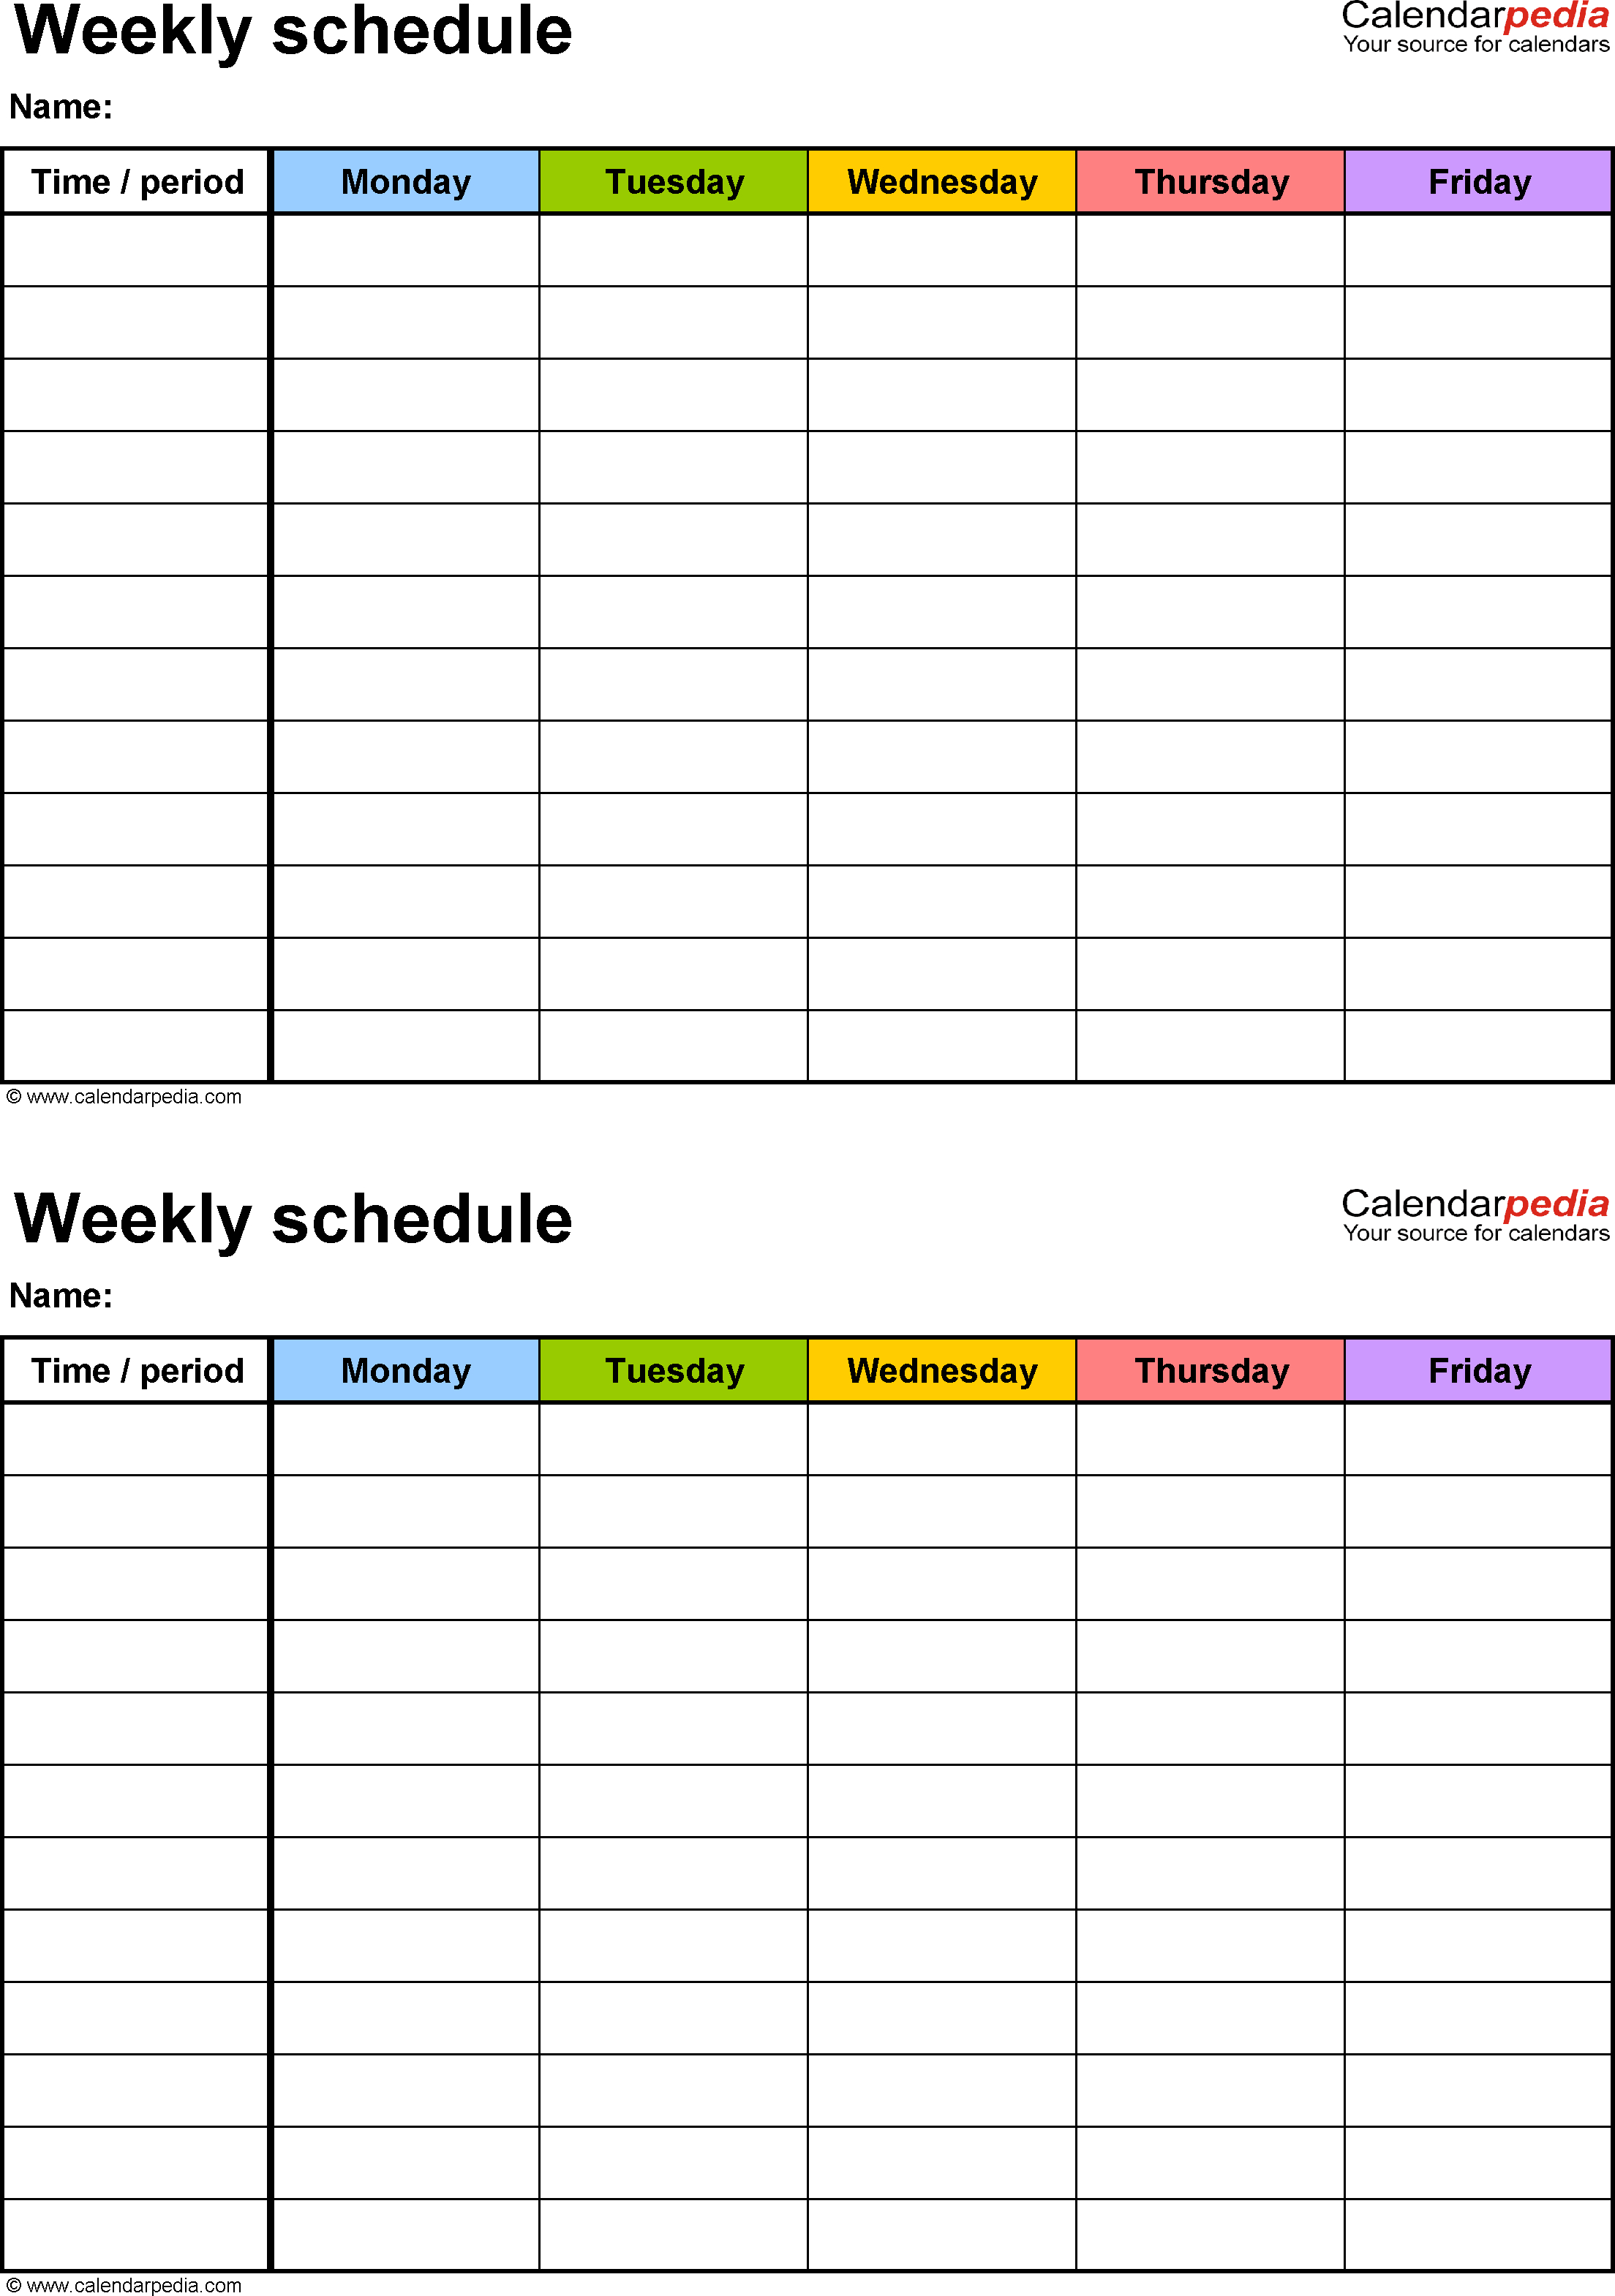 Free Weekly Schedule Templates For Word - 18 Templates throughout 5 Day Work Schedule Template